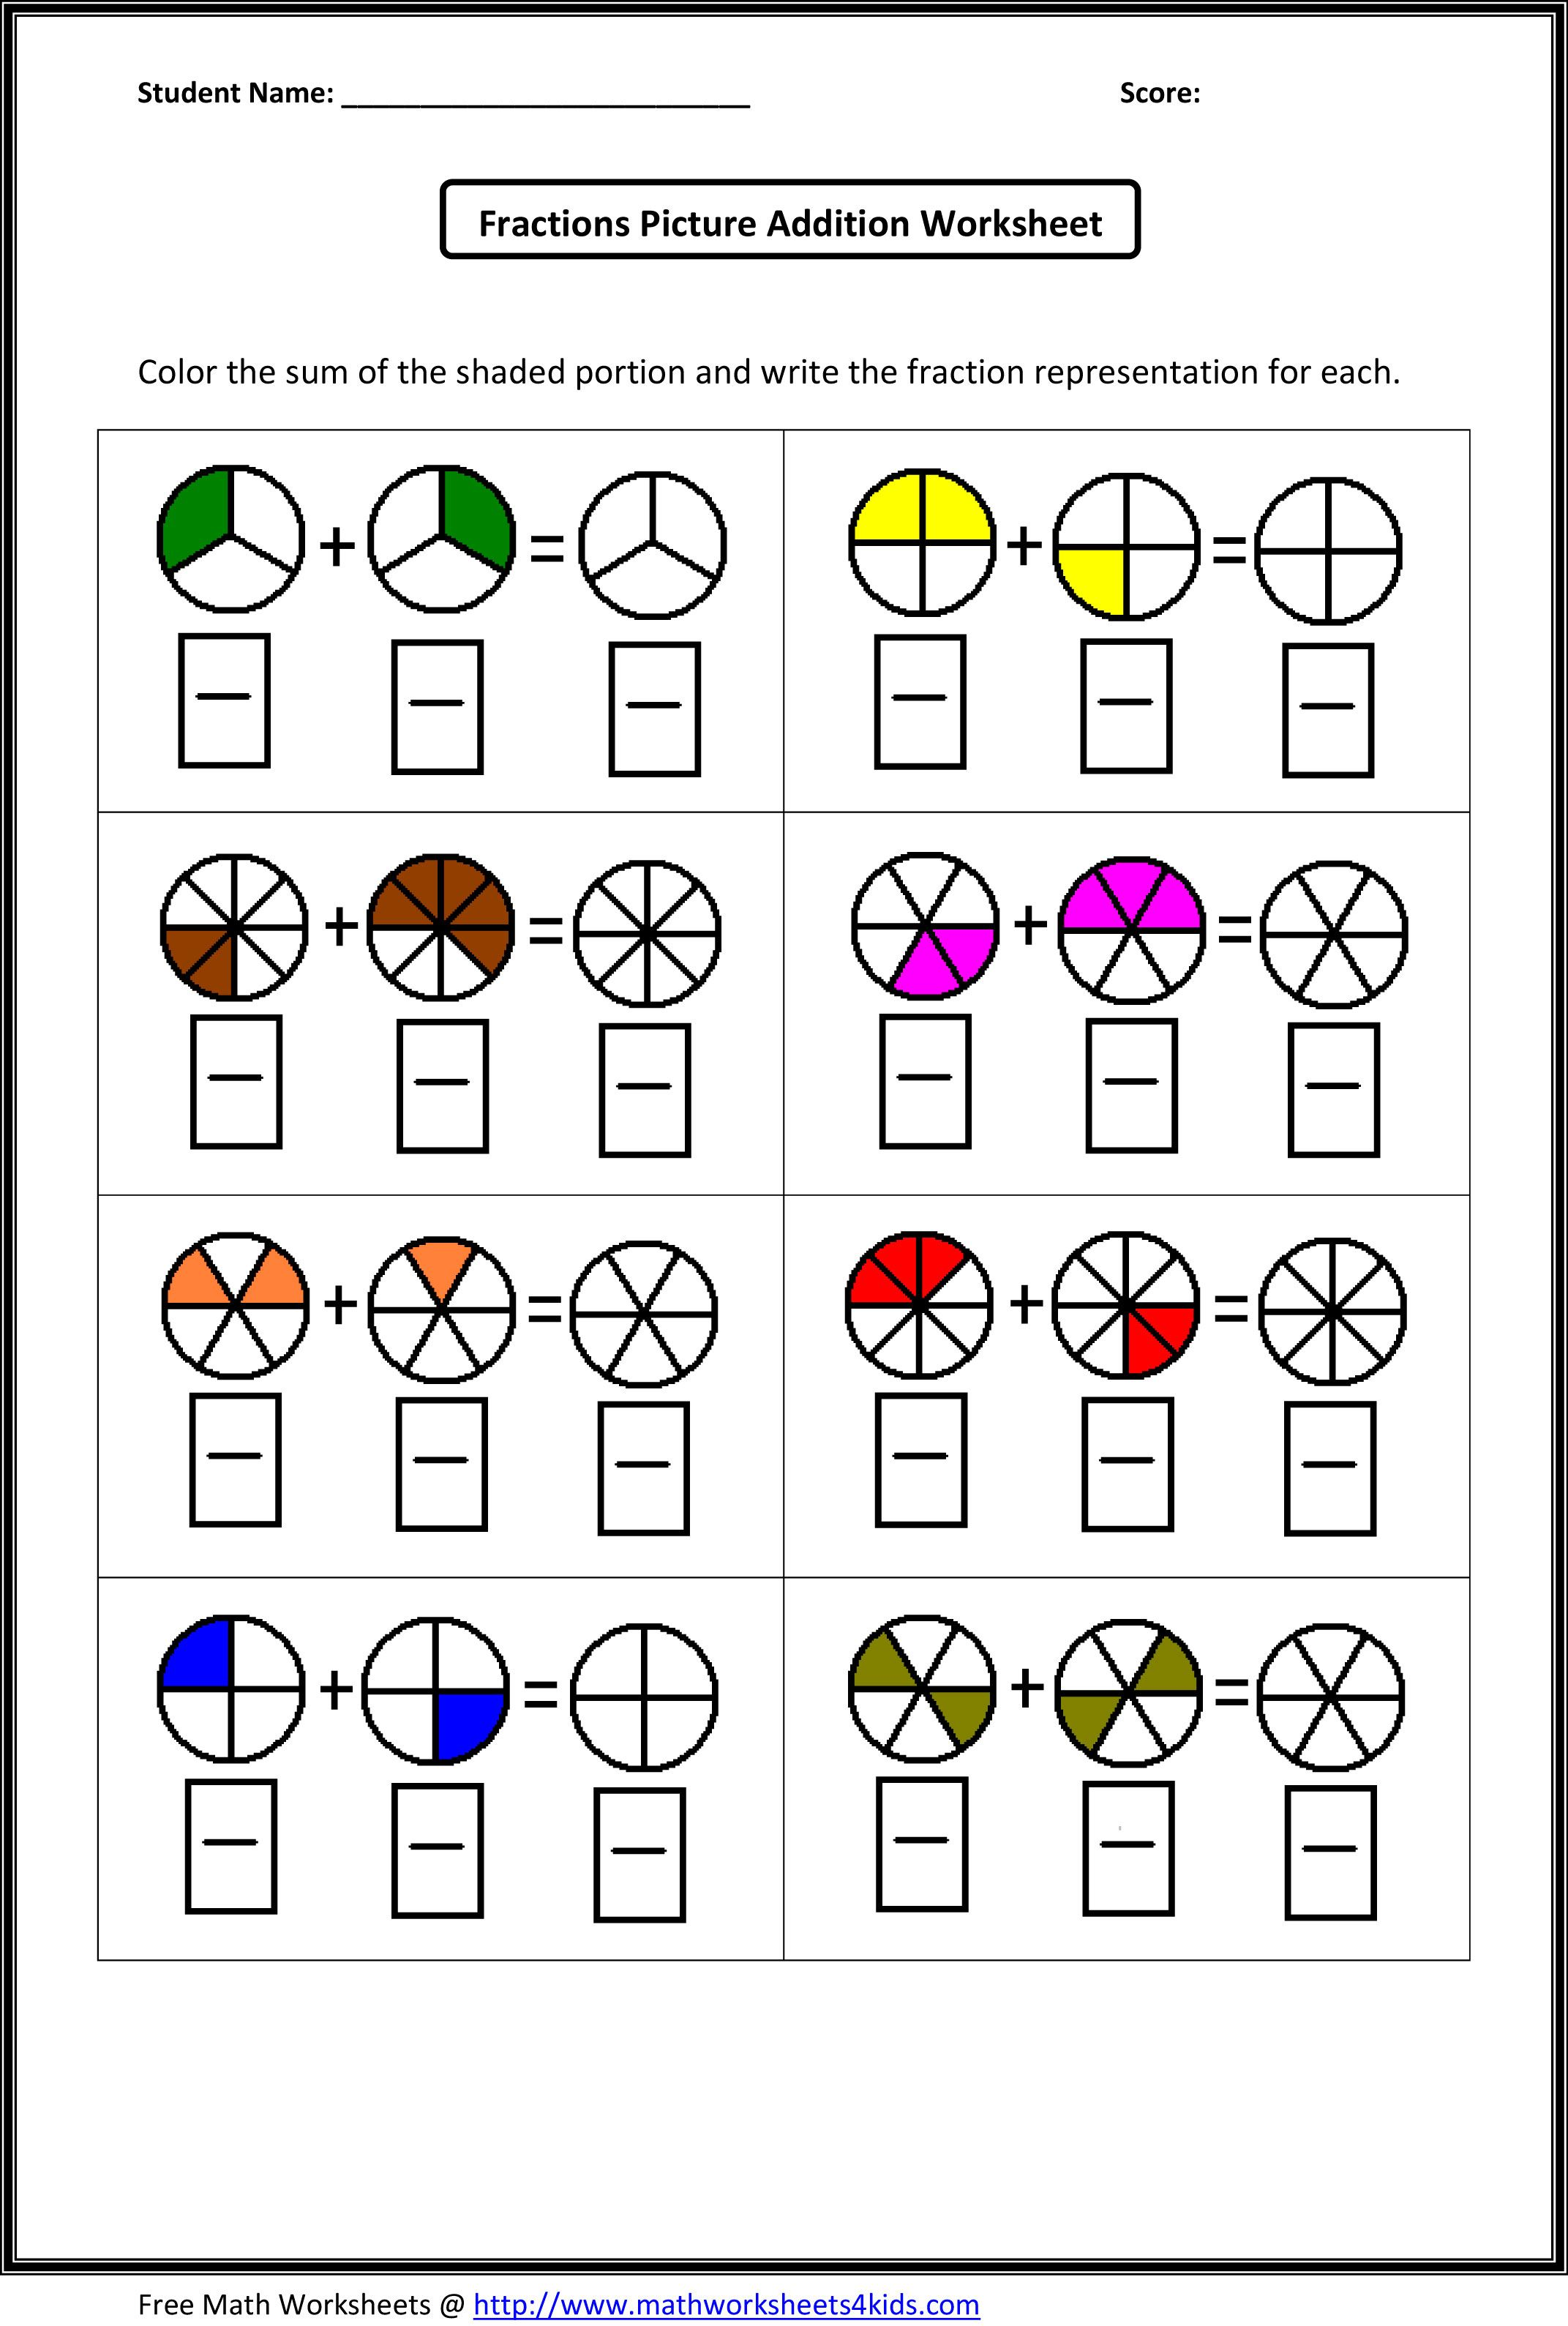 Free Worksheet Fraction Attraction Worksheet fraction circles worksheet printable worksheets pinterest addition worksheets